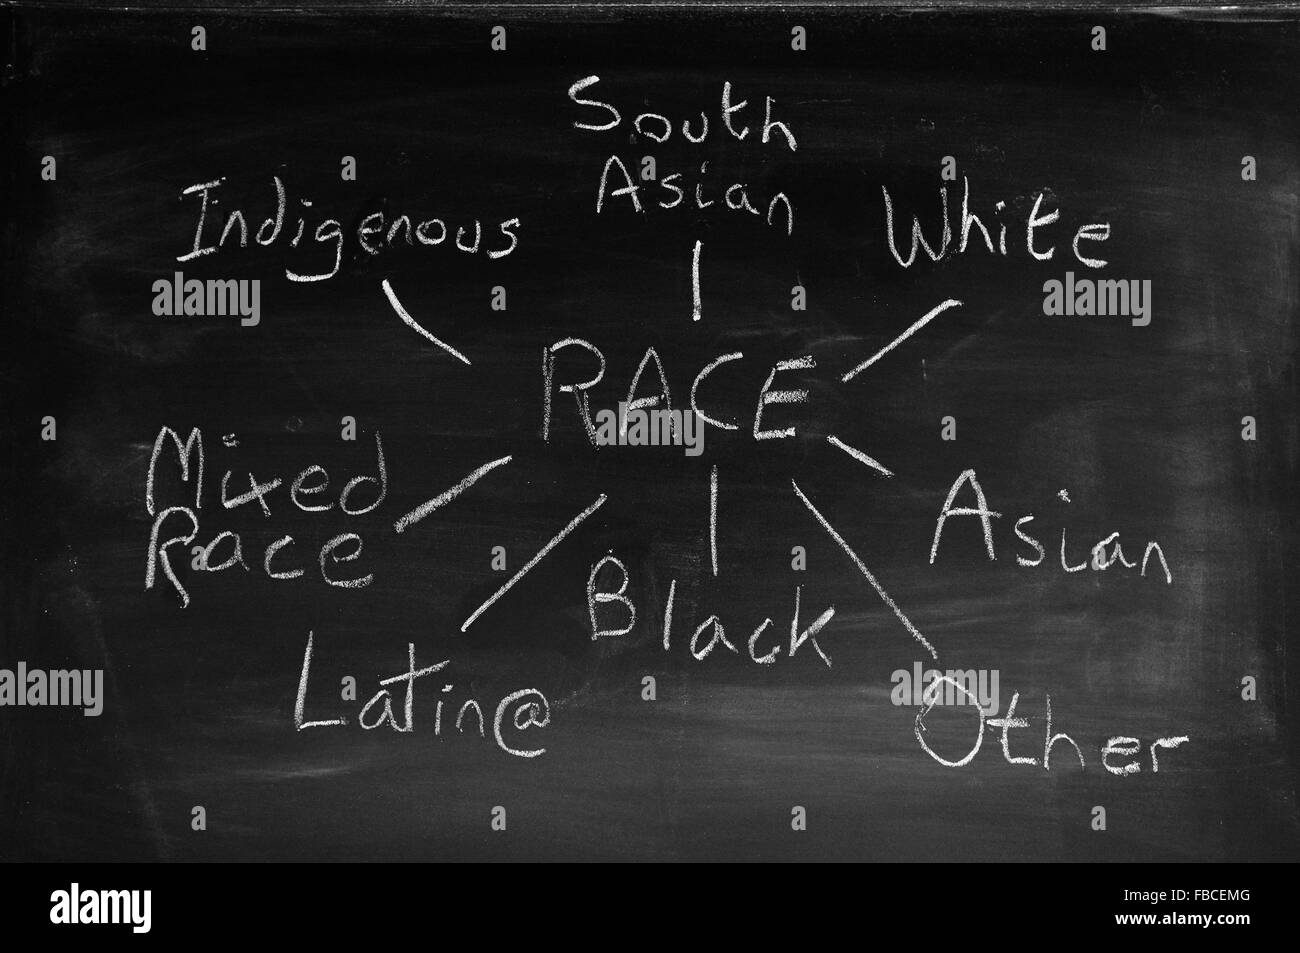 A word association diagram about race drawn on a blackboard. - Stock Image